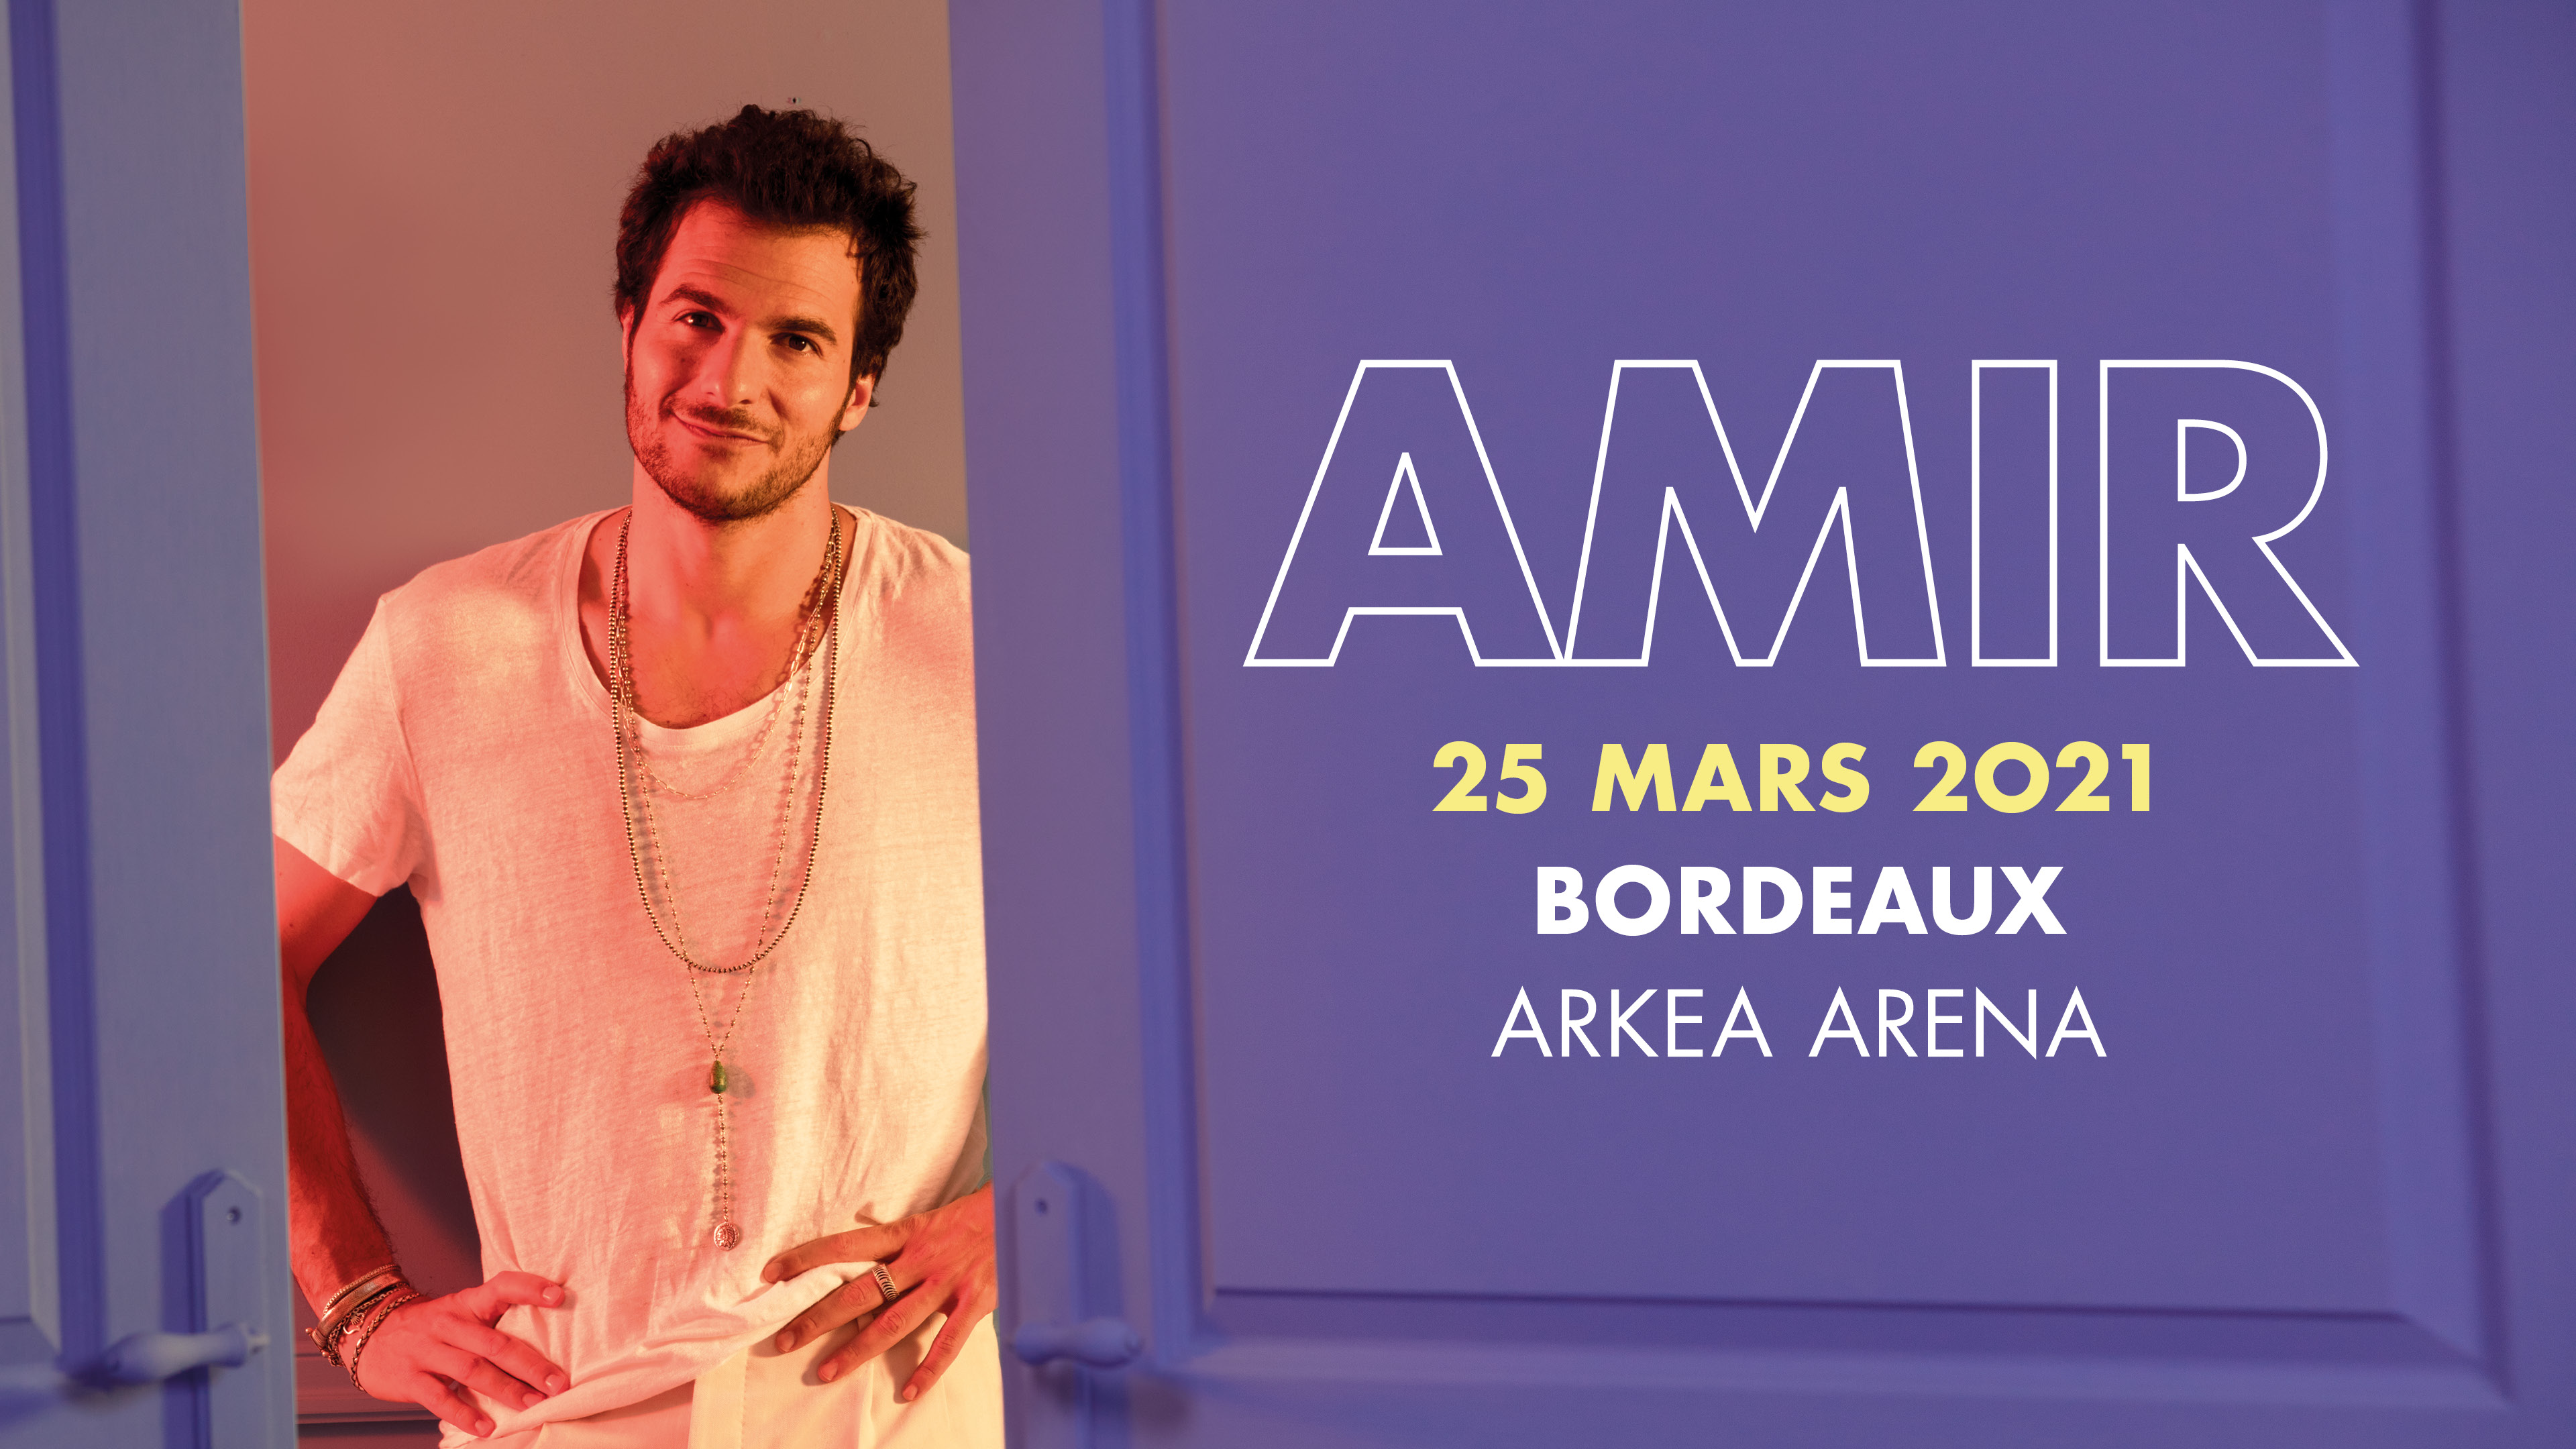 Amir_2021_tournee_visuelweb_facebook_event_1920x1080_bordeaux.jpg (965 KB)